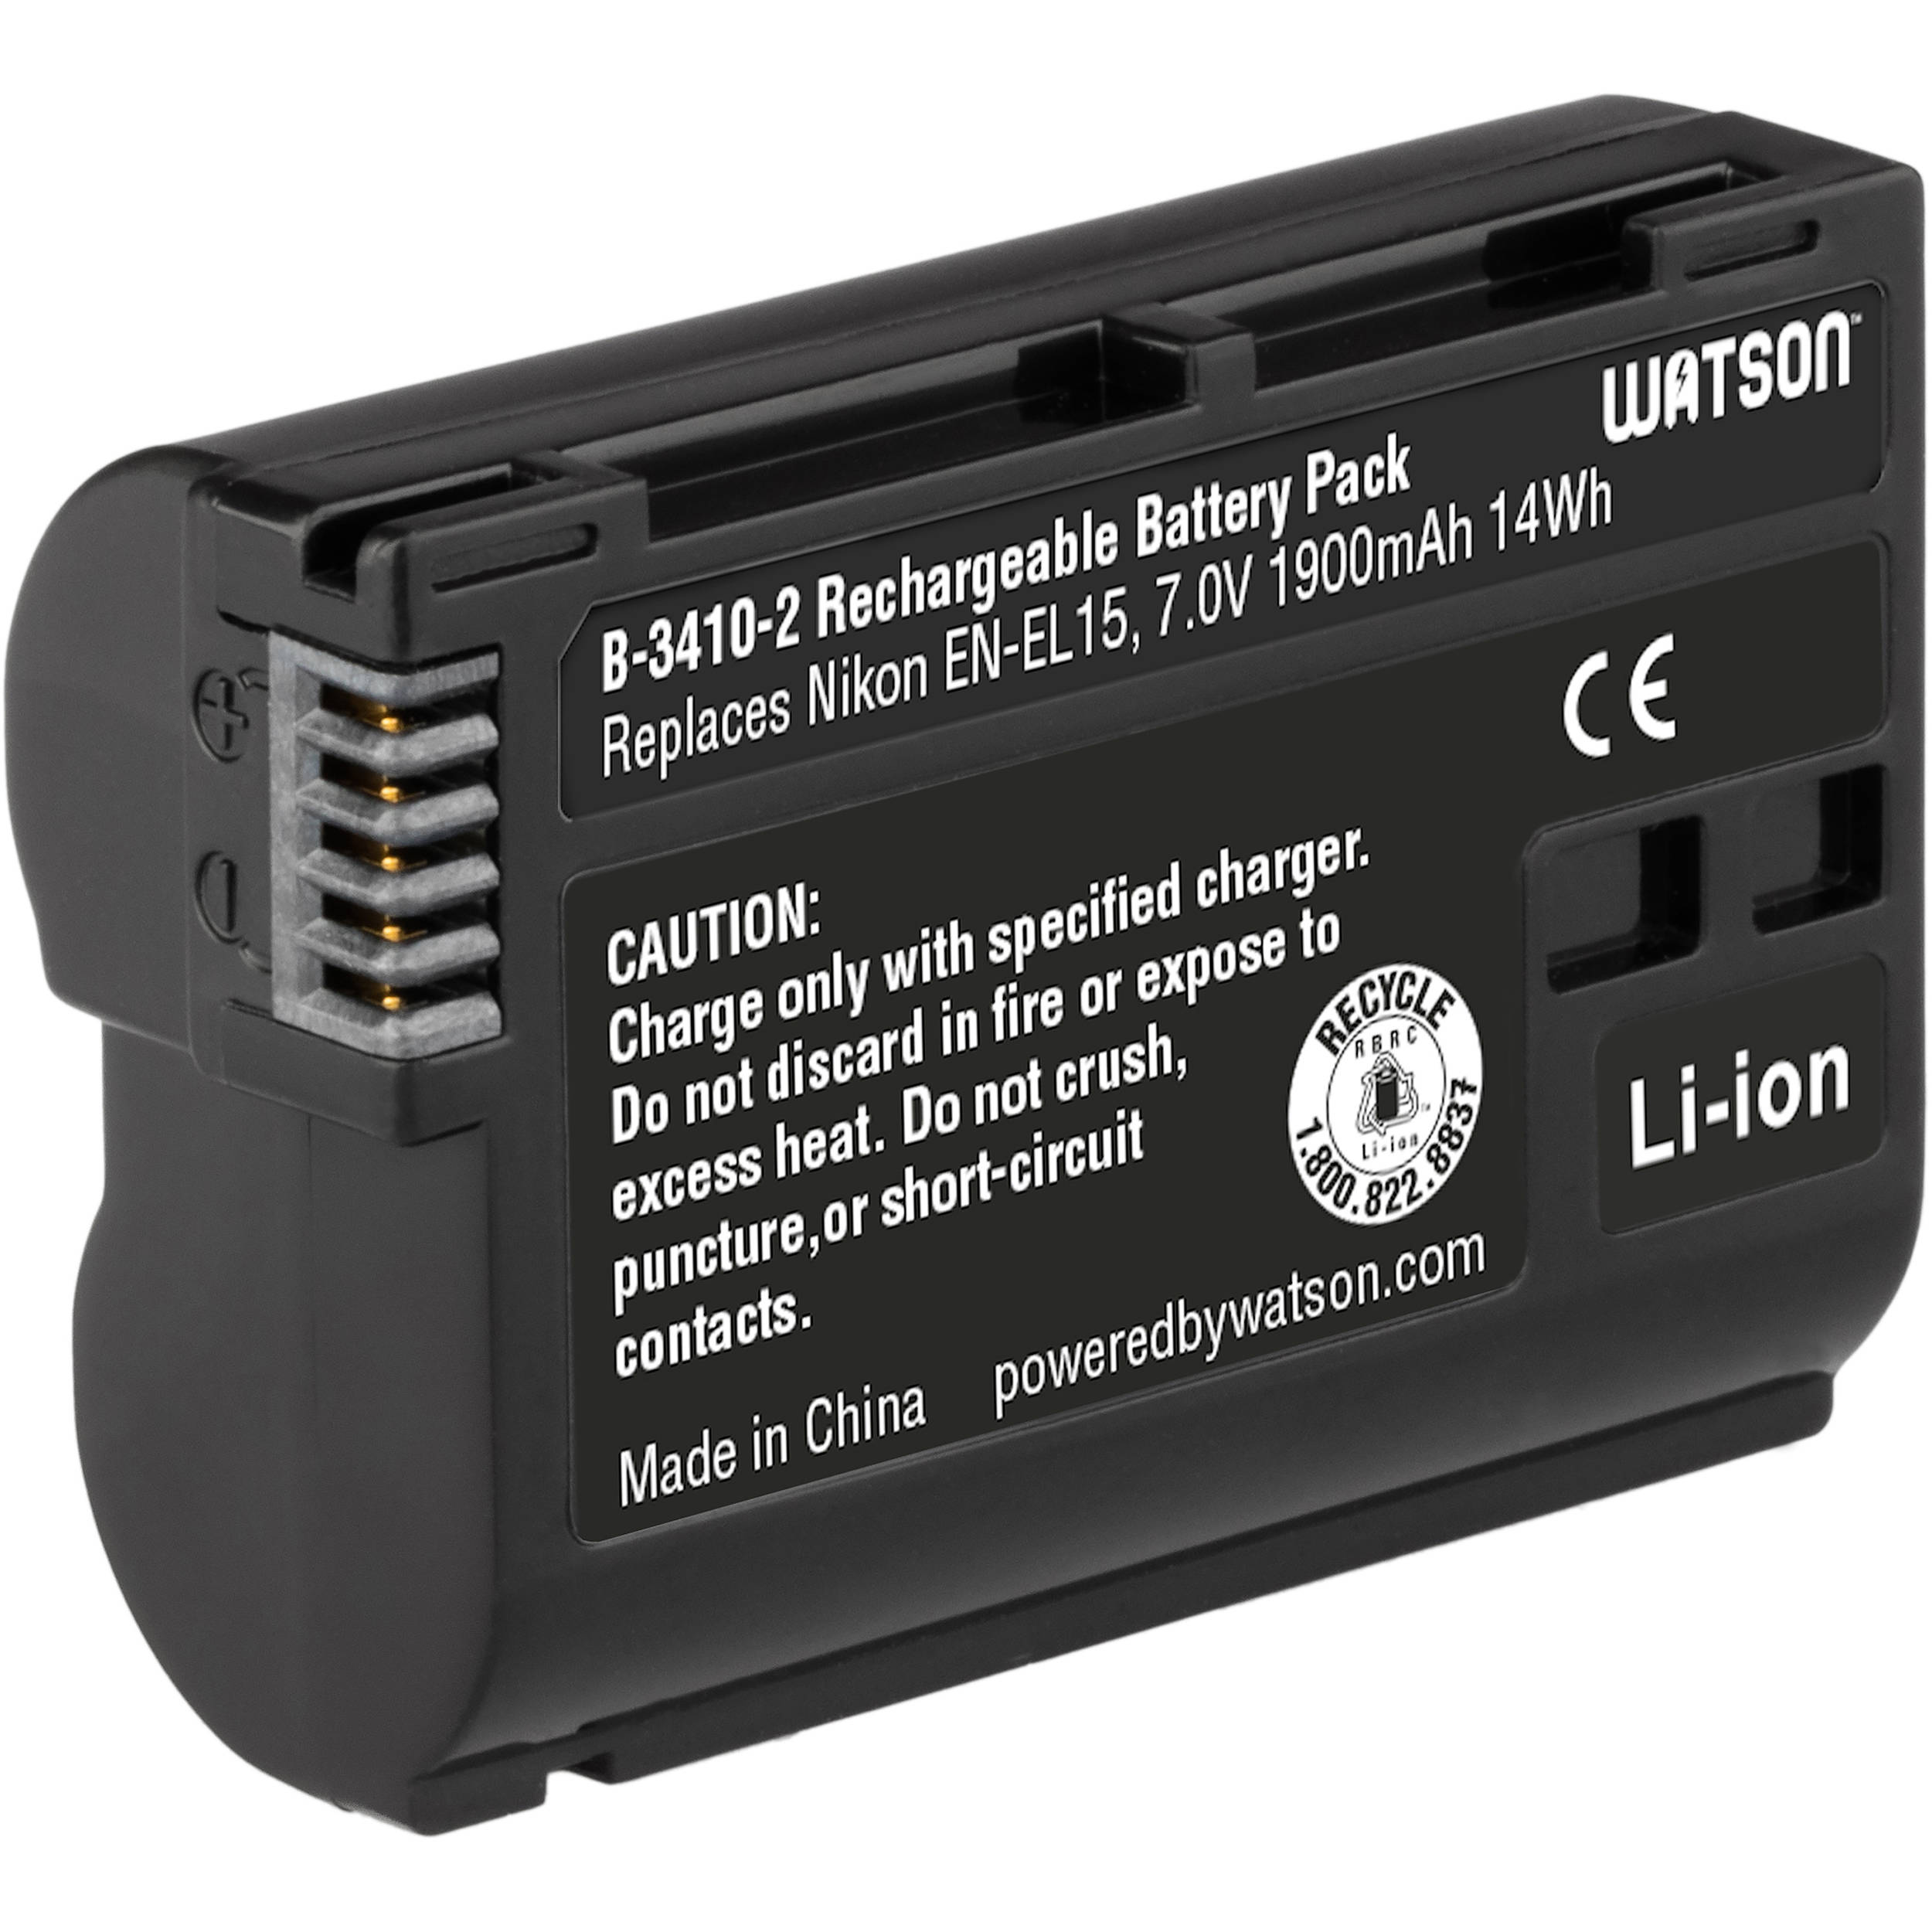 Watson En El15 Lithium Ion Battery Pack B 3410 2 Bh Simple And Utility Charger Circuit Powersupply 70v 1900mah